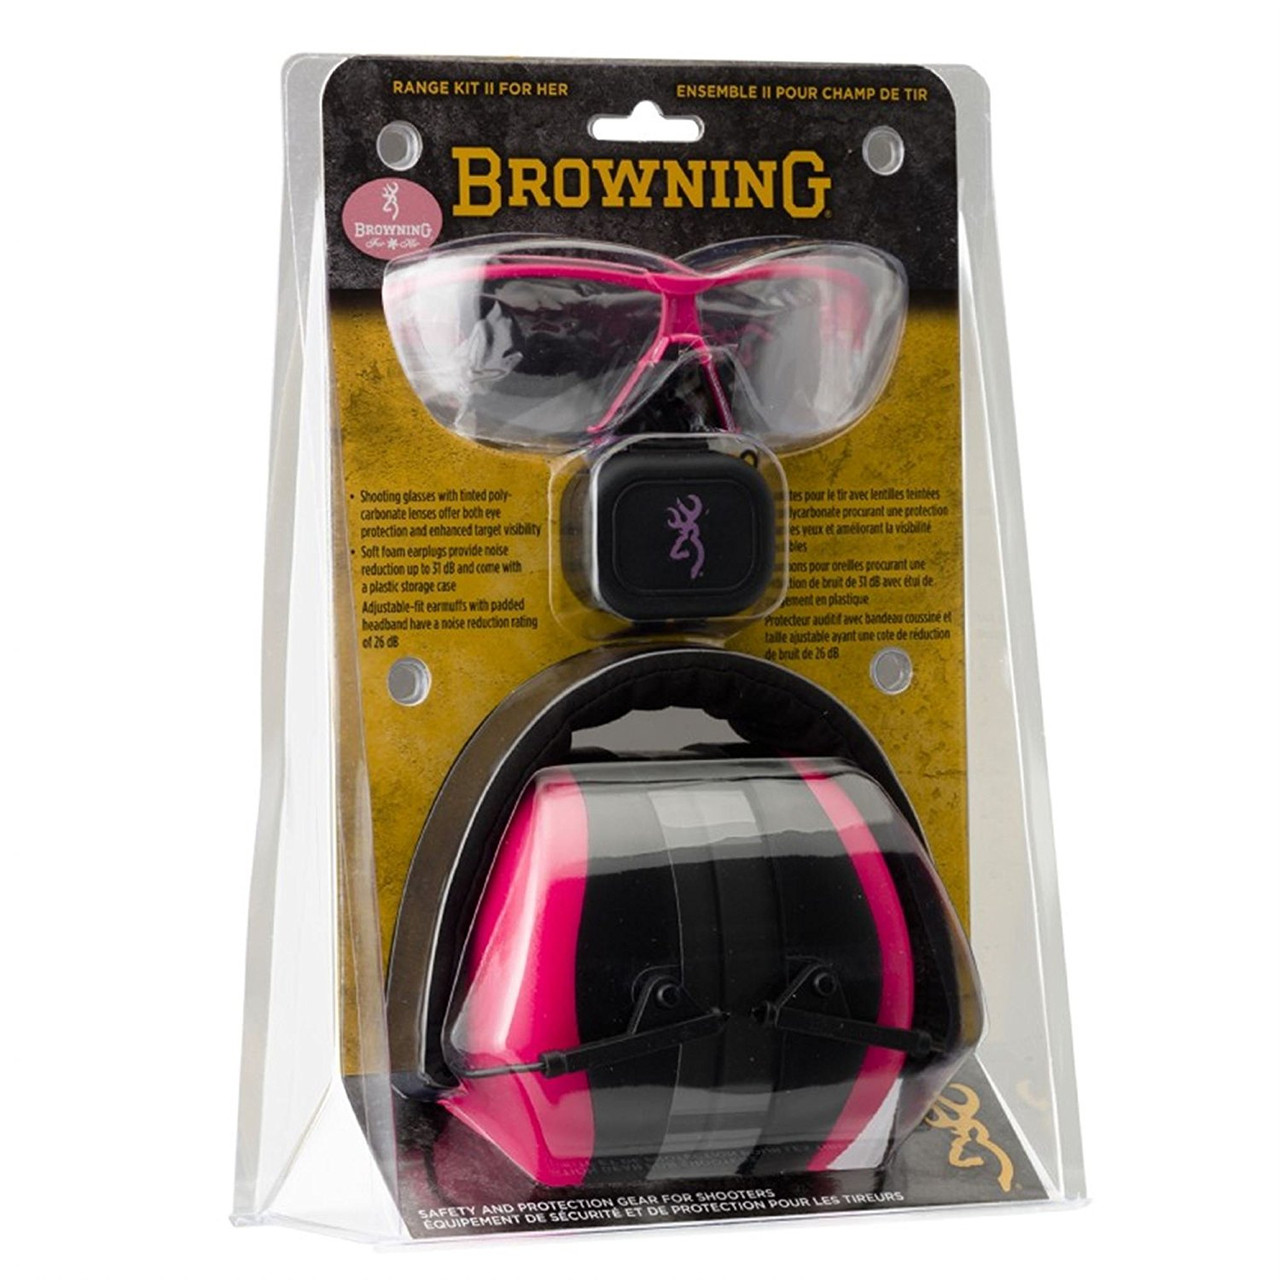 Browning Range Kit II For Her, 26 dB Muffs, Sunglasses, Pink - 126373